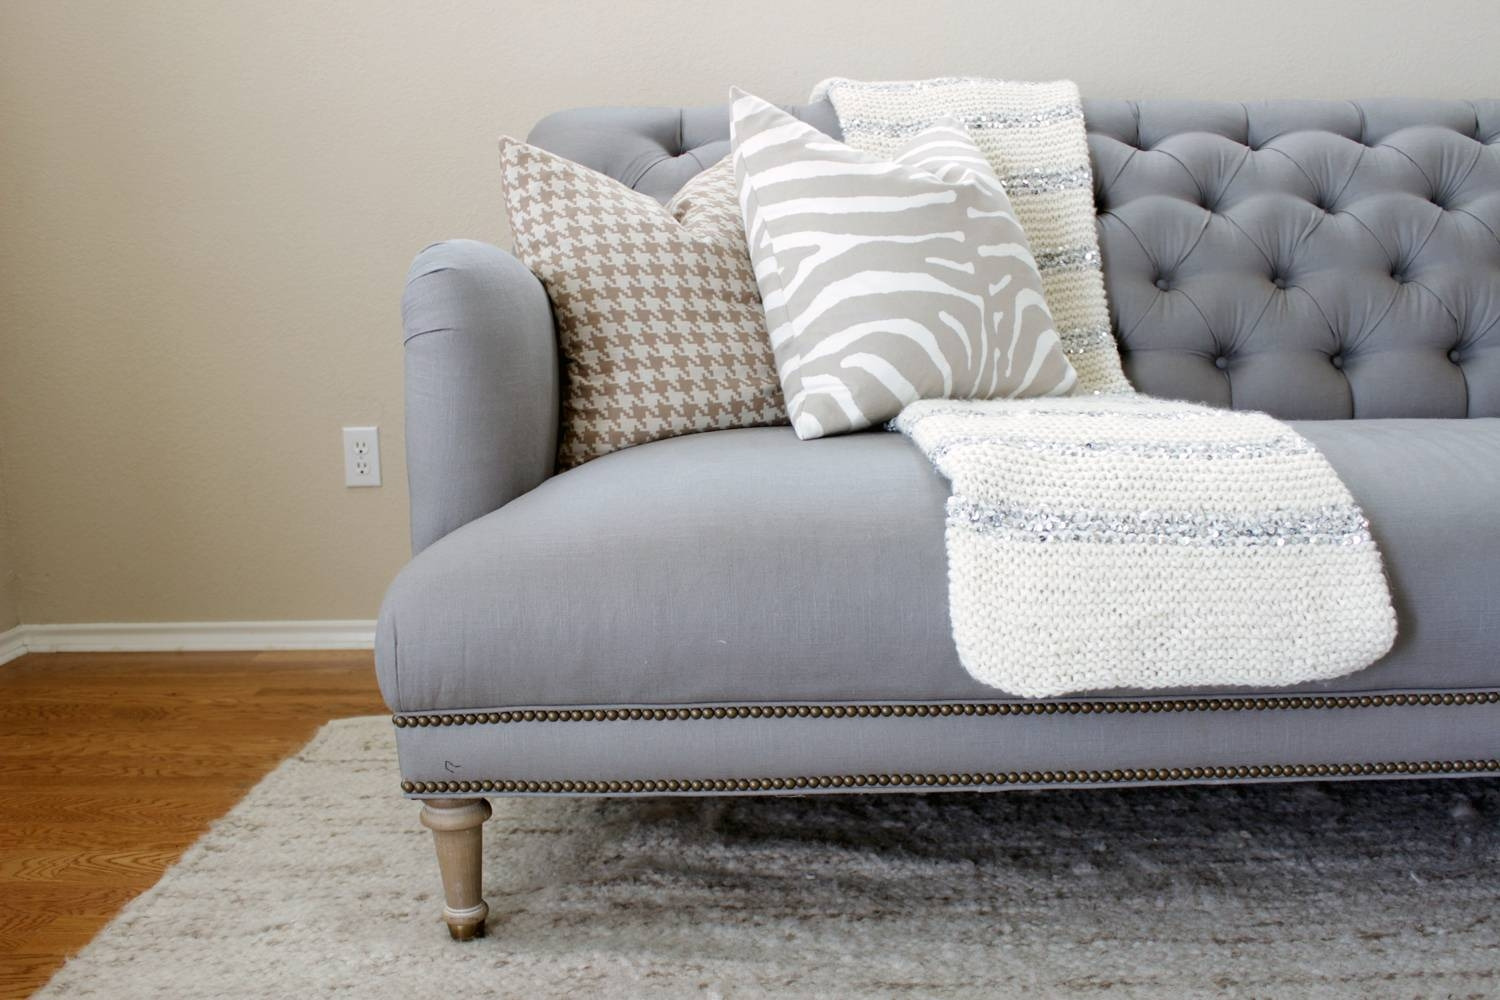 Tufted Linen Couches | Tehranmix Decoration pertaining to Tufted Linen Sofas (Image 29 of 30)